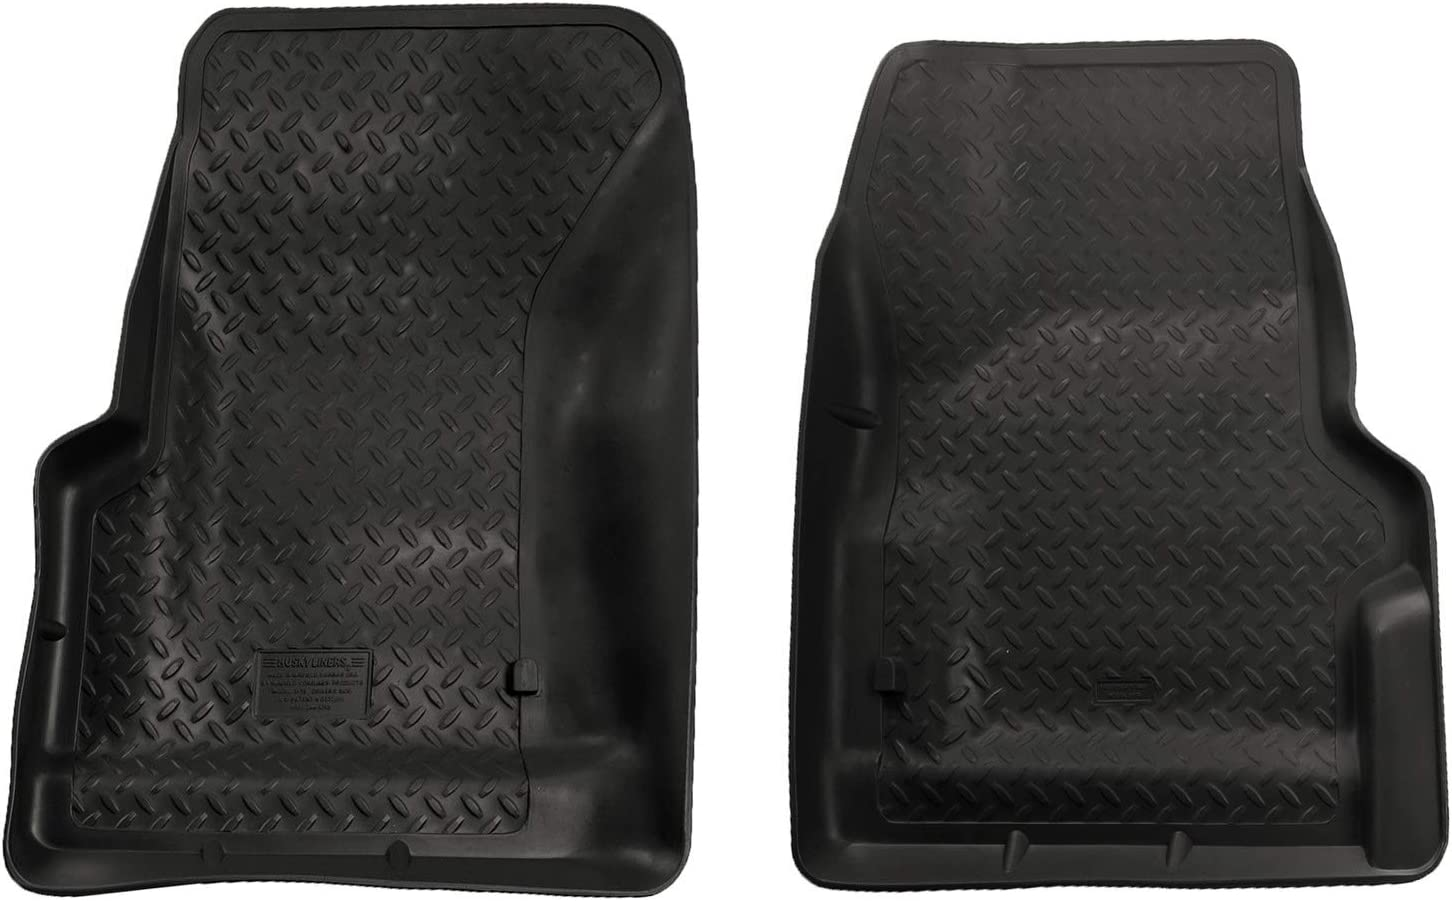 Husky Liners 31731 Fits 1997-06 Max 57% OFF Wrangler Jeep Classic Fron Purchase Style